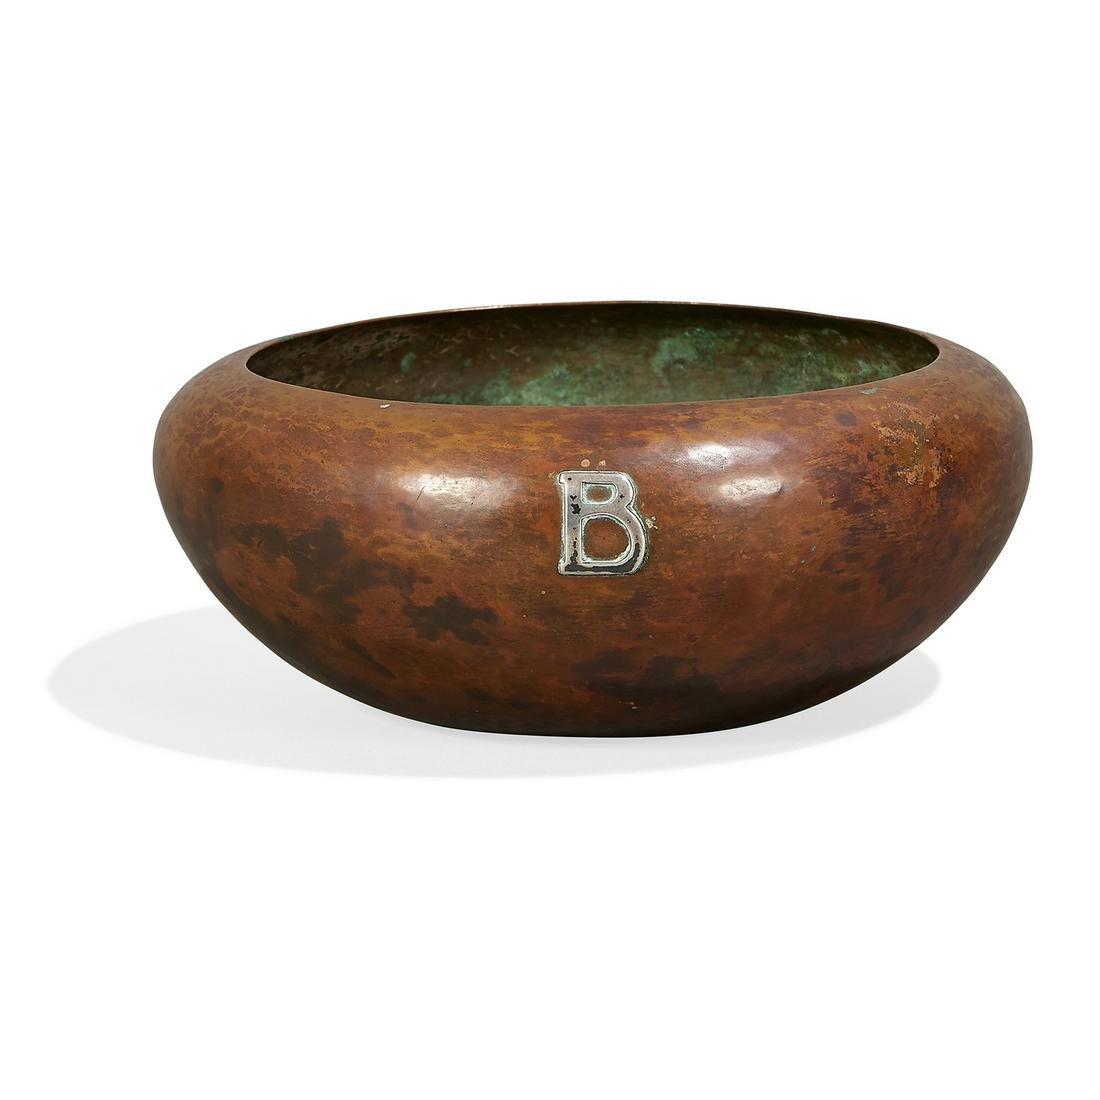 The Kalo Shop copper bowl